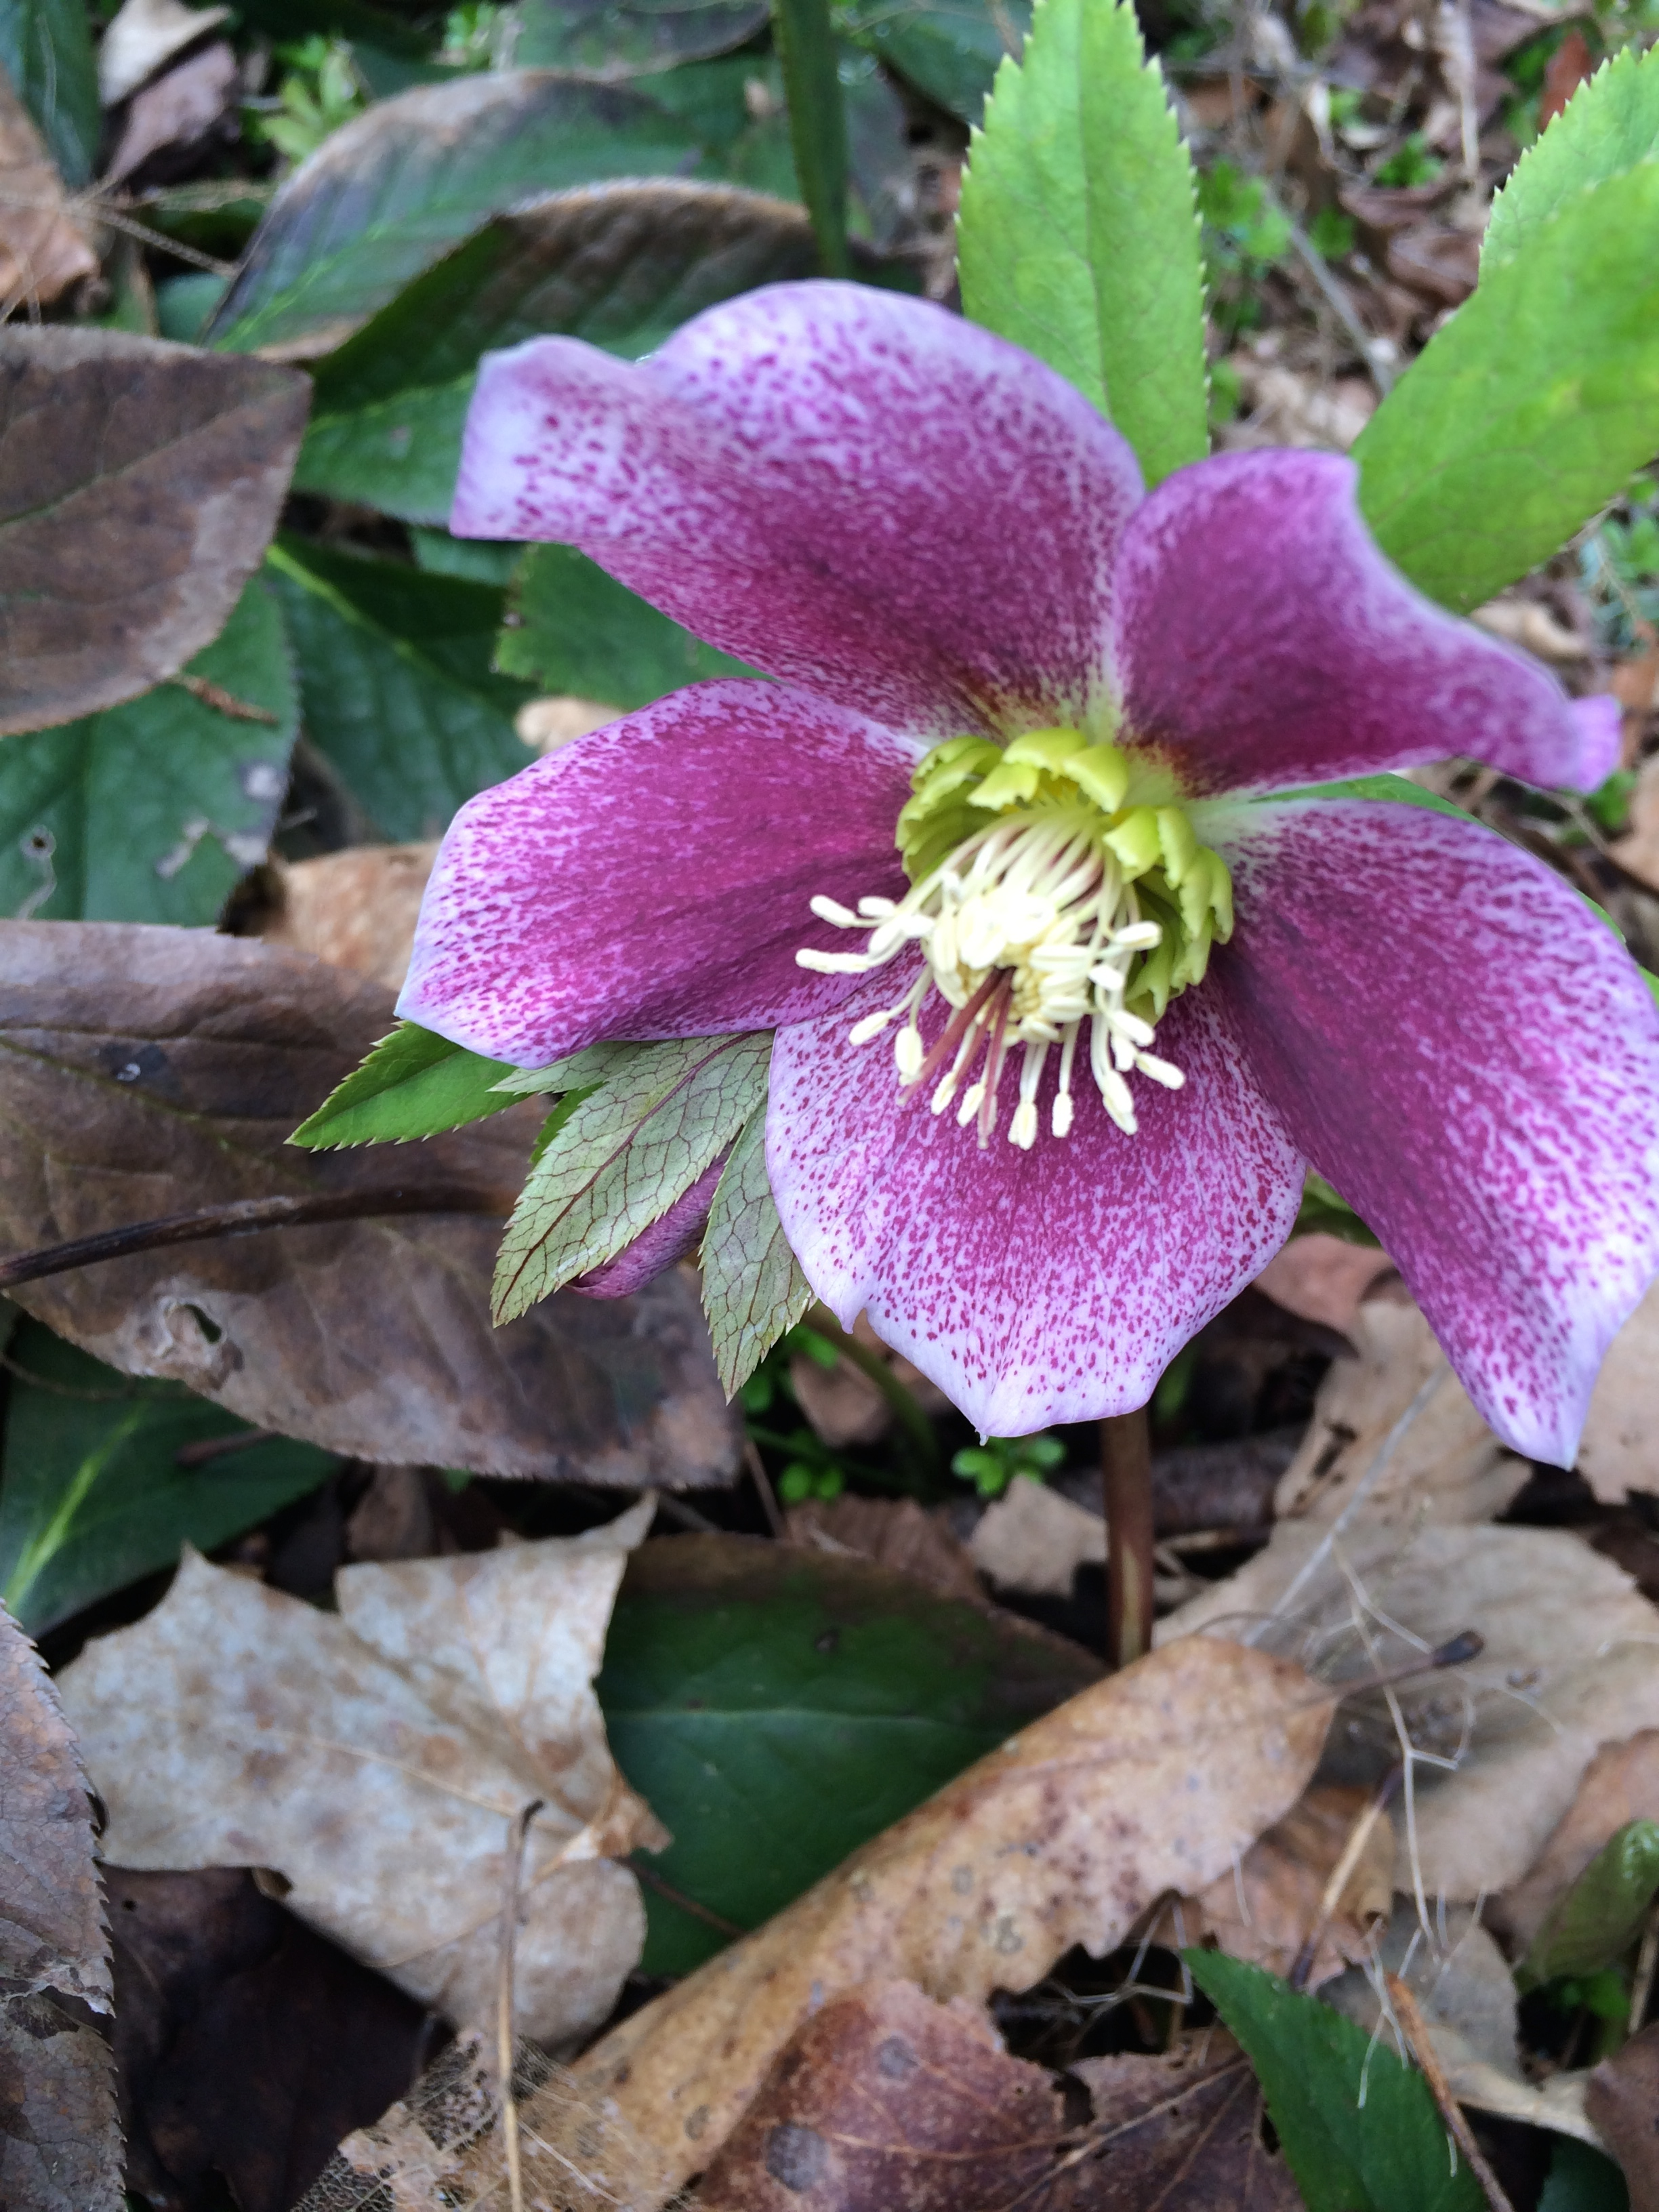 Hellebore flowers come in many shades--from pale cream to pale green to pale pink to deep maroon.